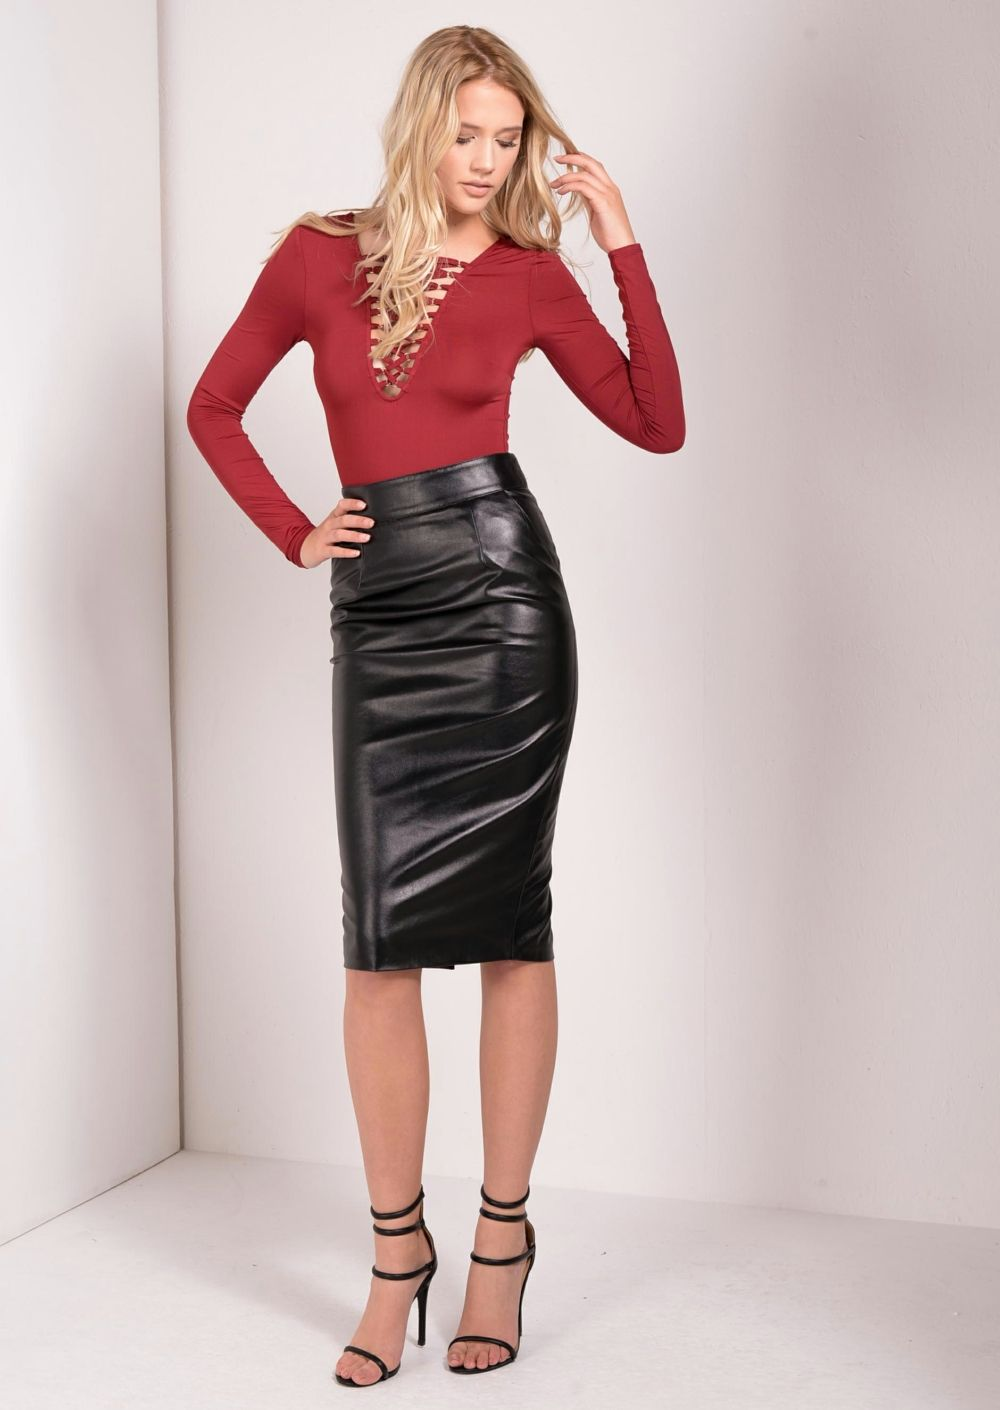 Kallie Leather Look Midi Skirt | Midi skirts | Pinterest | Skirts ...